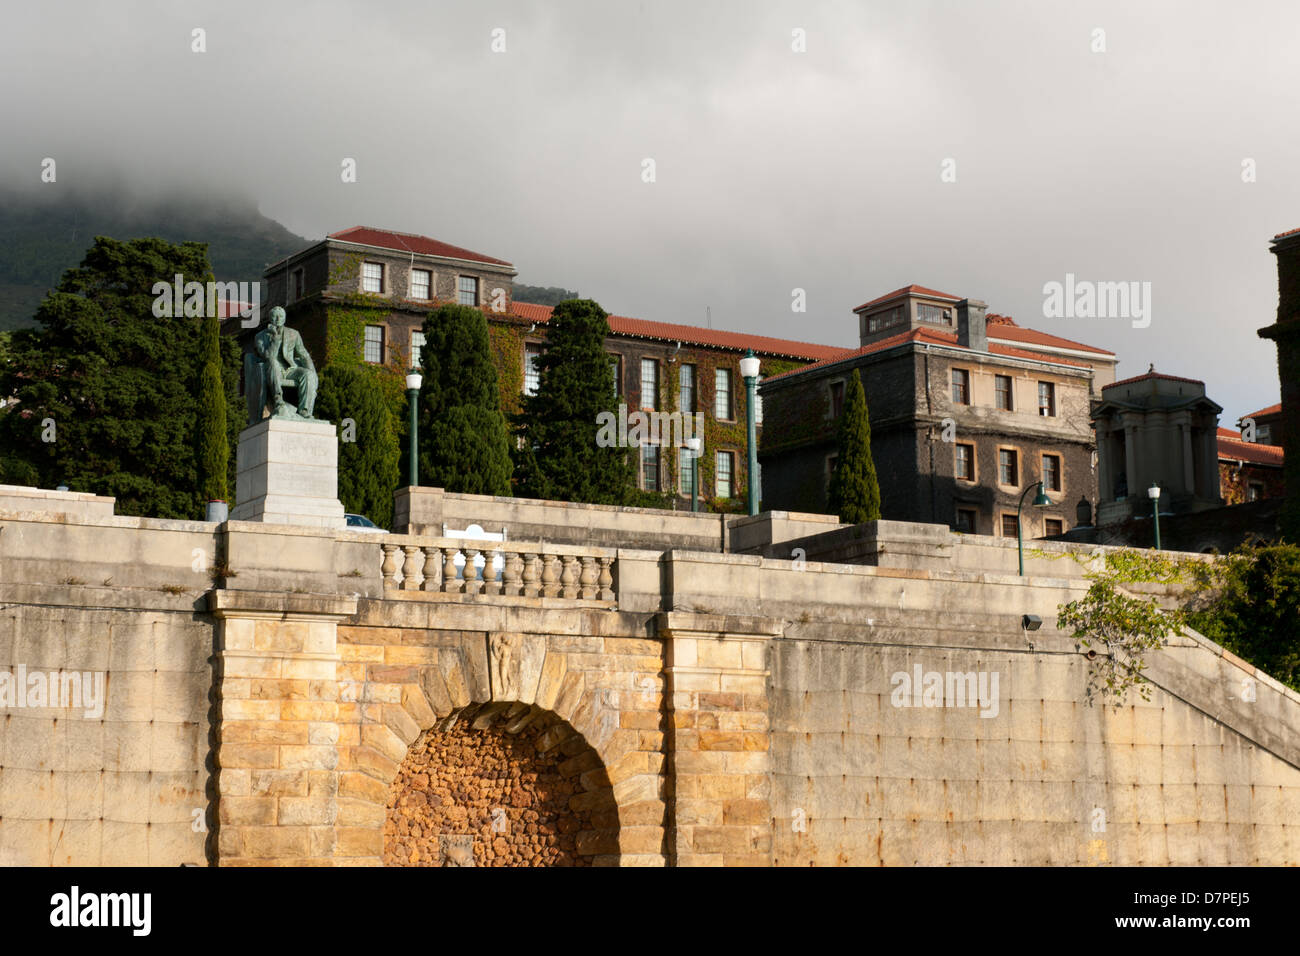 UCT, University of Cape Town, South Africa - Stock Image